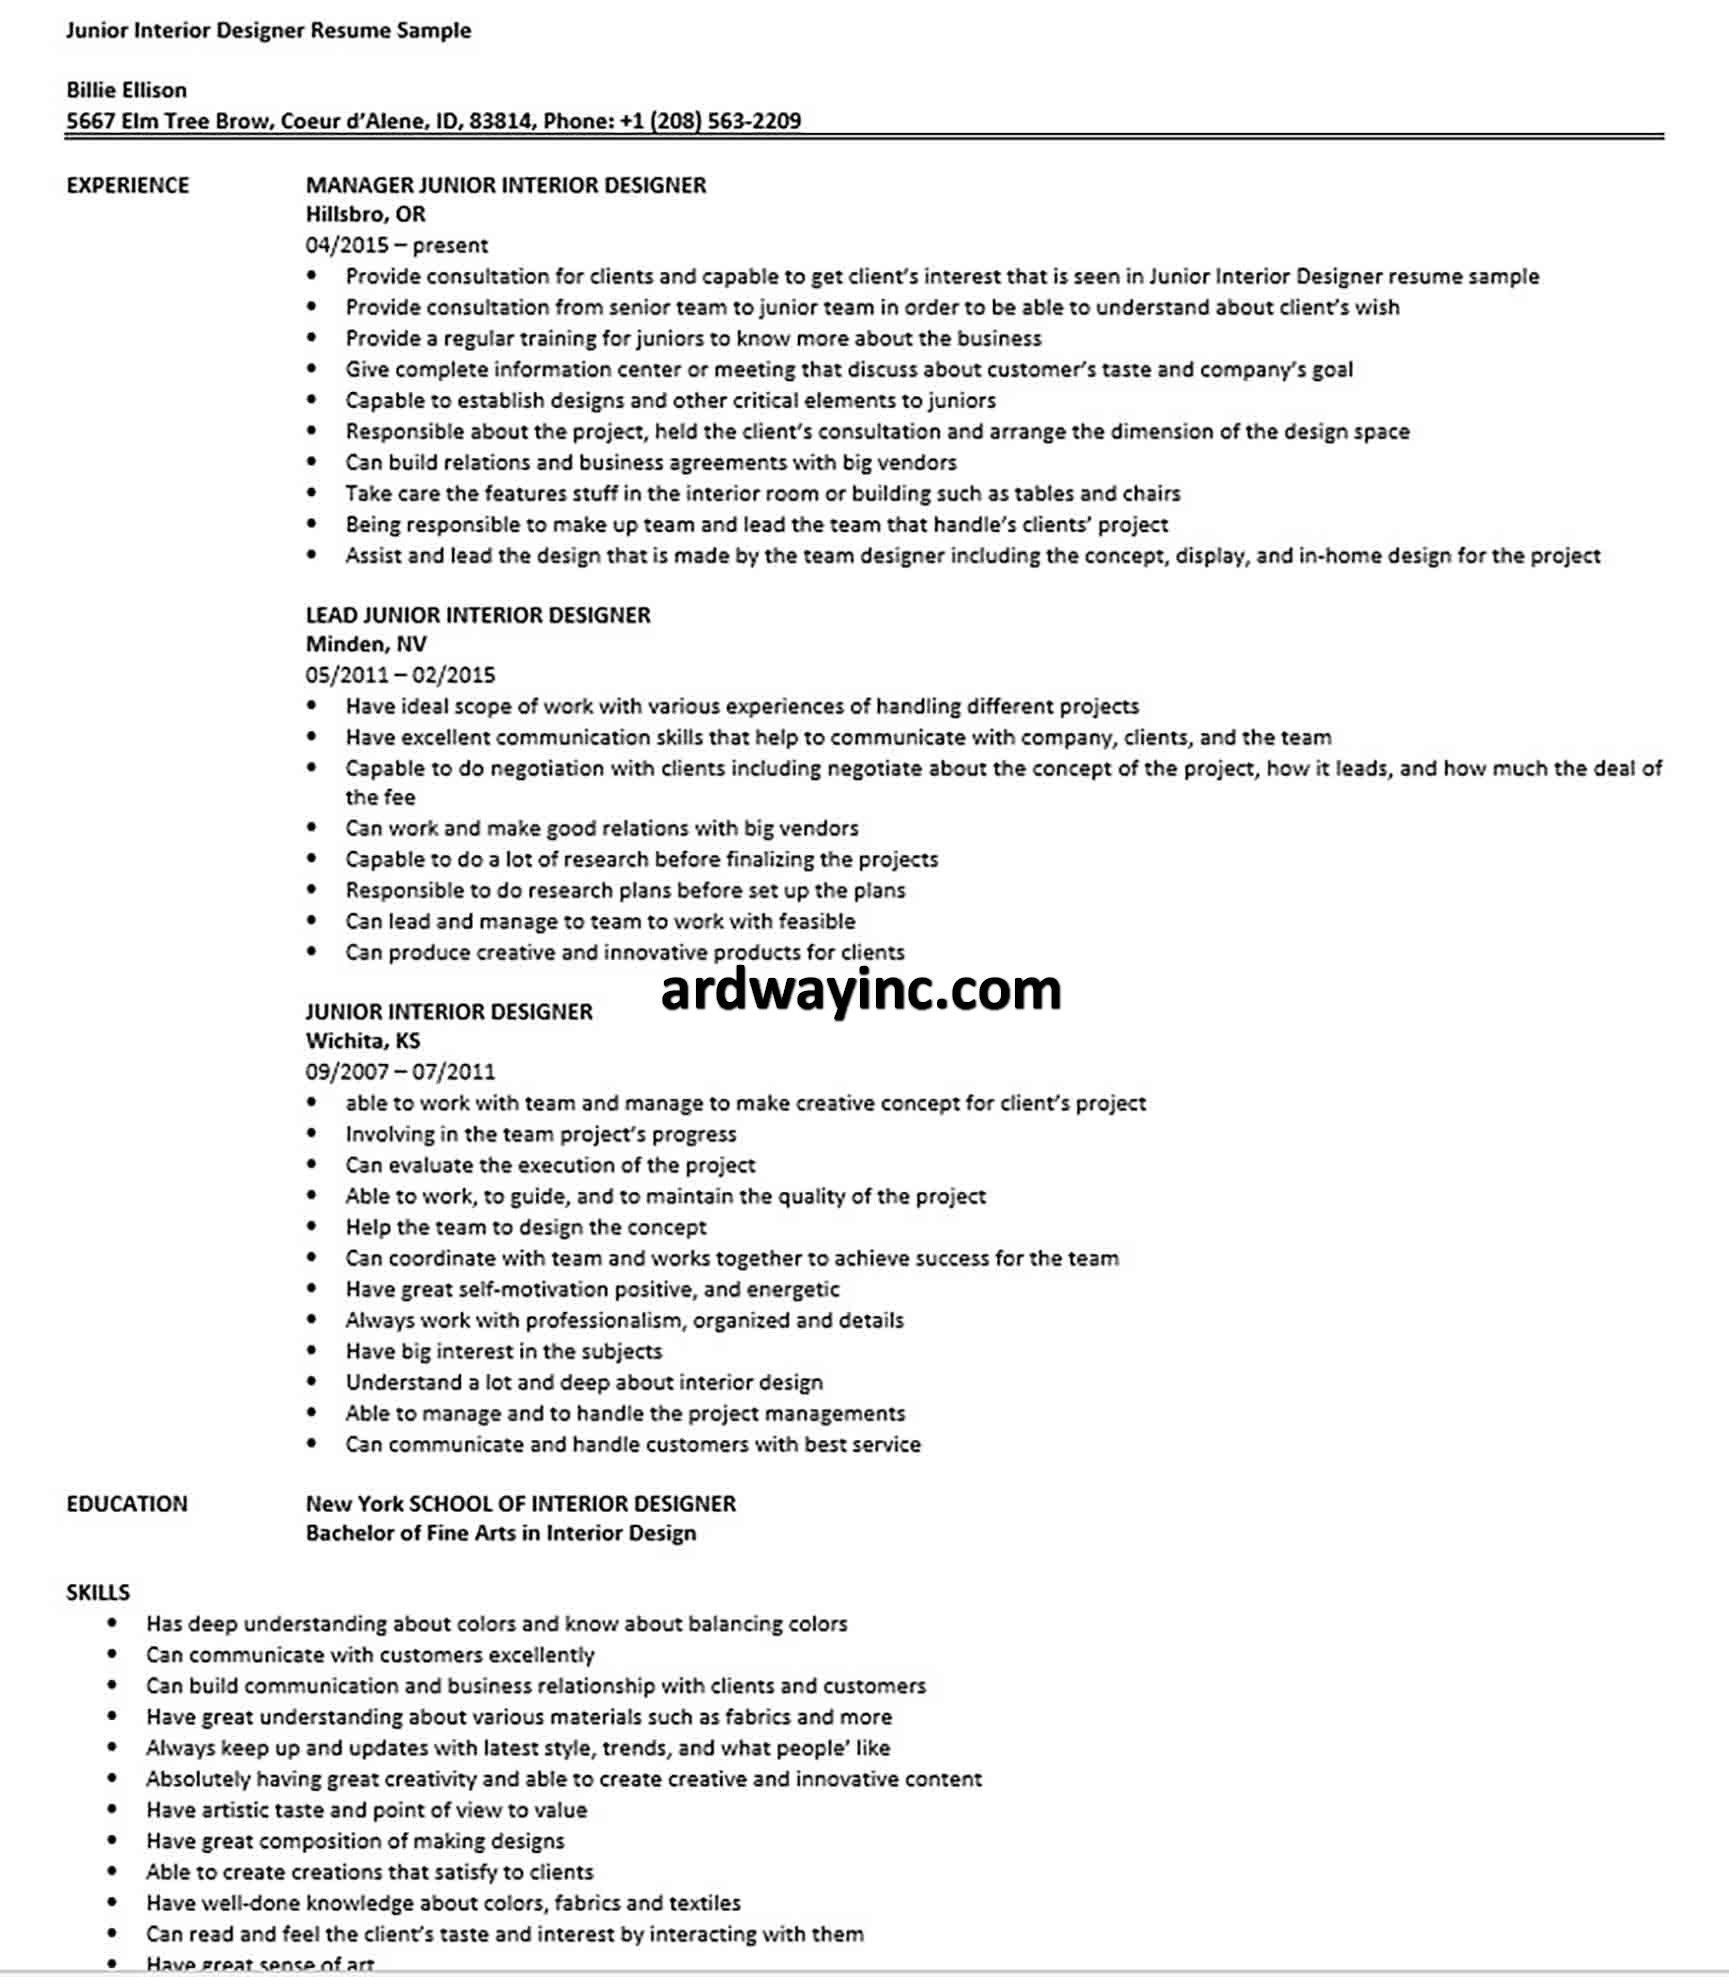 Junior Interior Designer Resume Sample In 2020 Resume Design Interior Design Jobs Resume